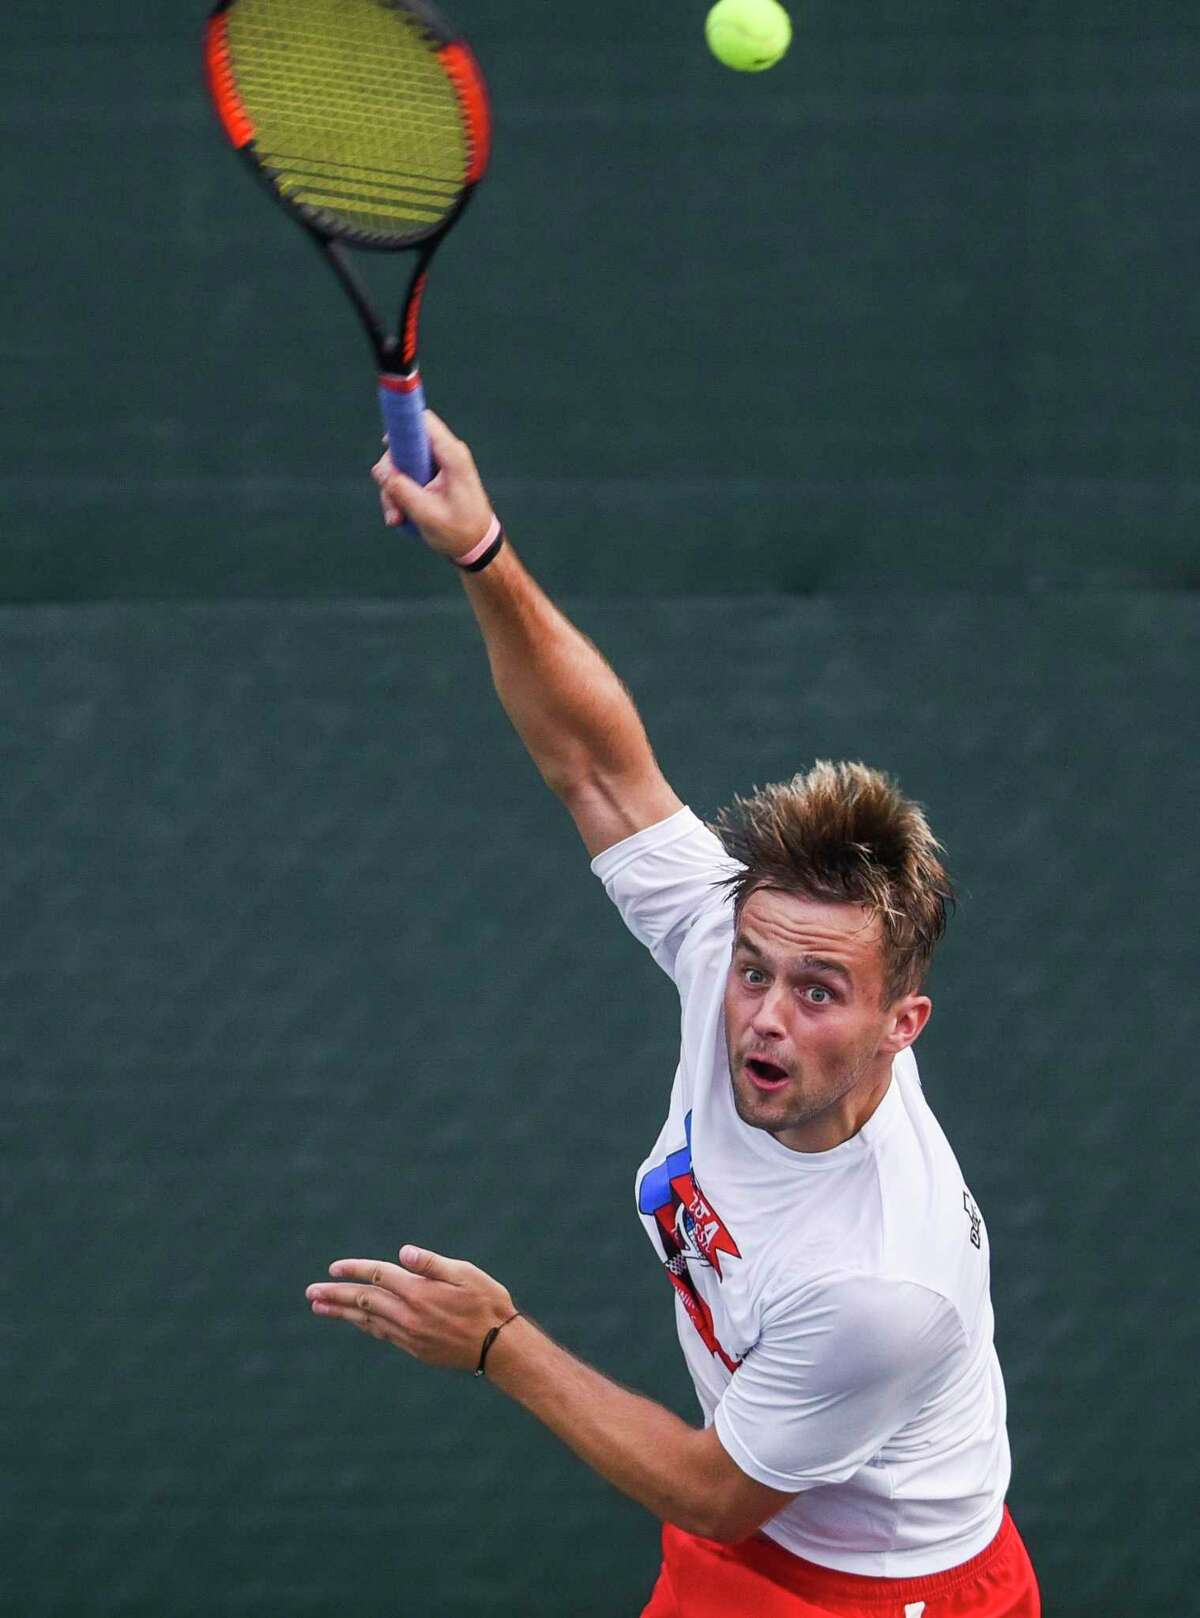 Josh Taylor serves during the Southeast Texas Tennis Association 100th annual Labor Day tournament at the Beaumont Tennis Center on Friday. Photo taken on Friday, 08/22/19. Ryan Welch/The Enterprise